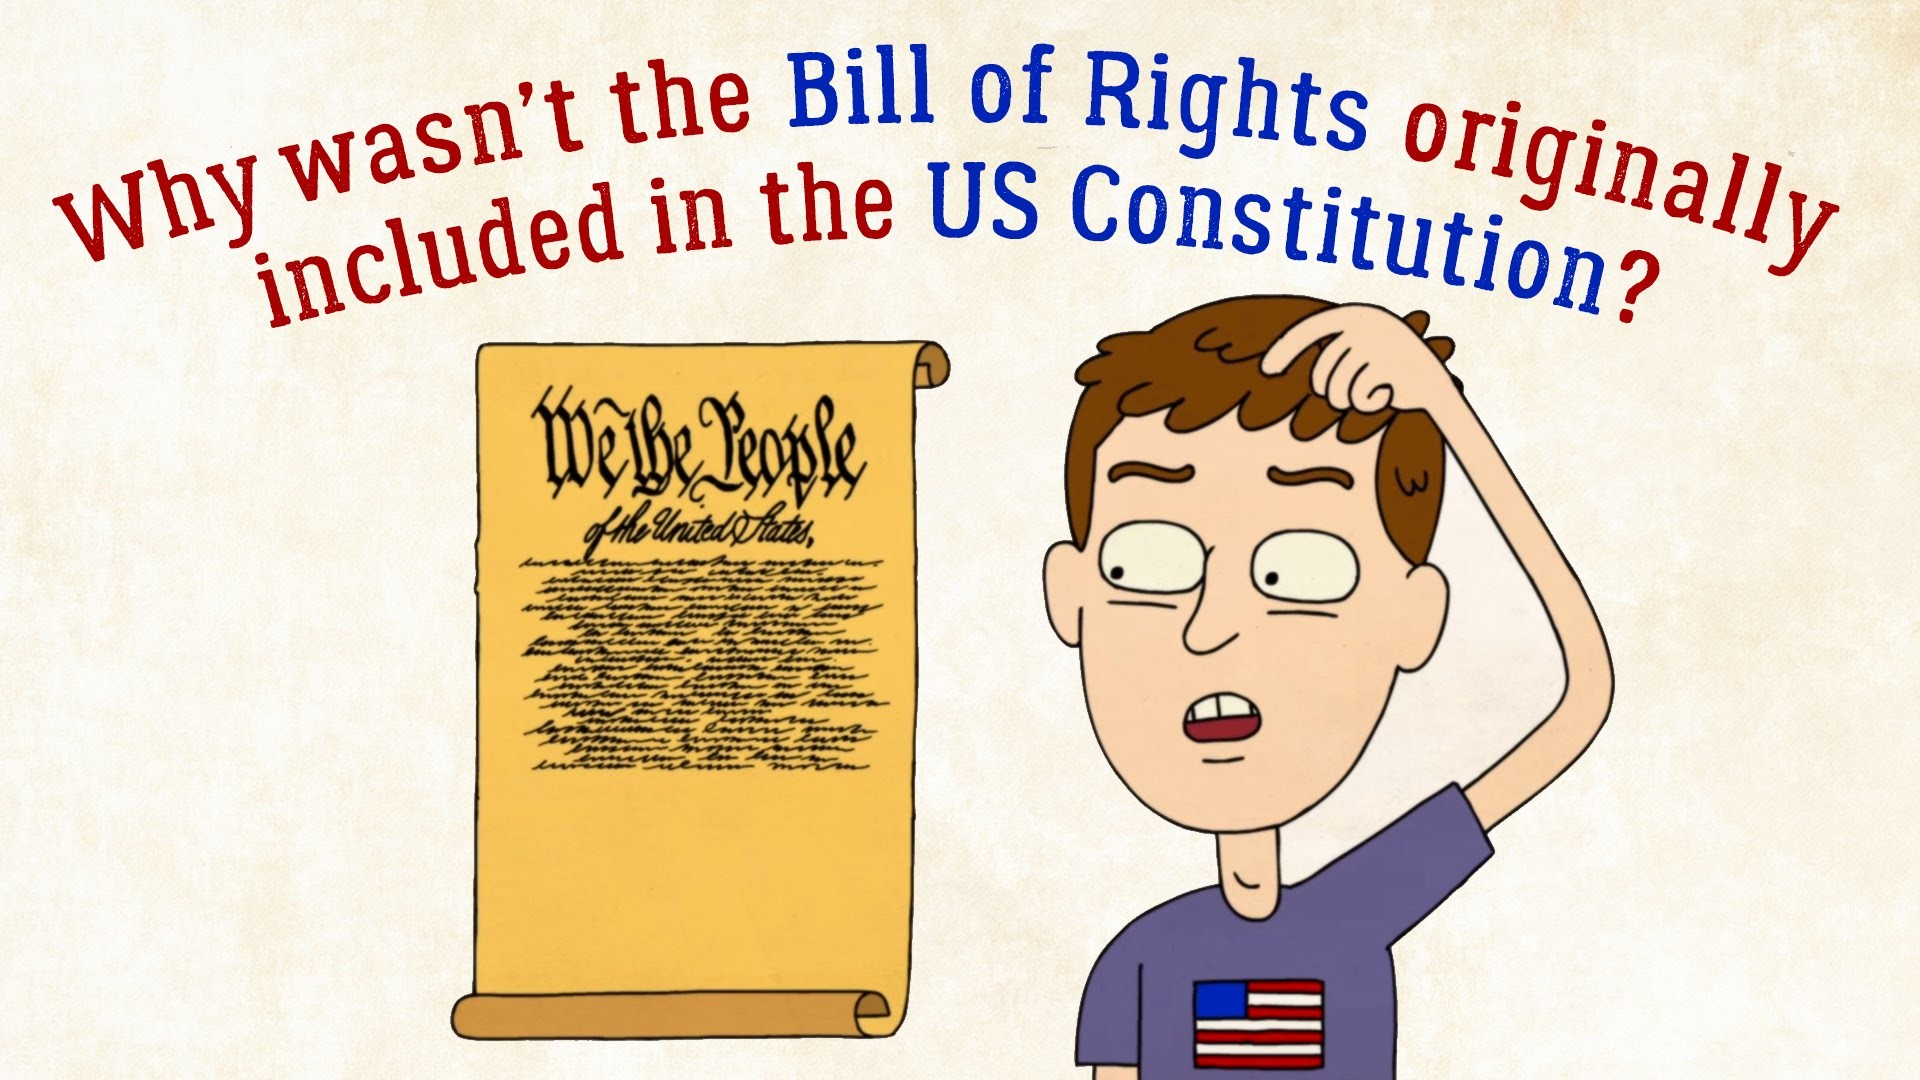 1920x1080 Why wasn't the Bill of Rights originally in the US Constitution? - James  Coll